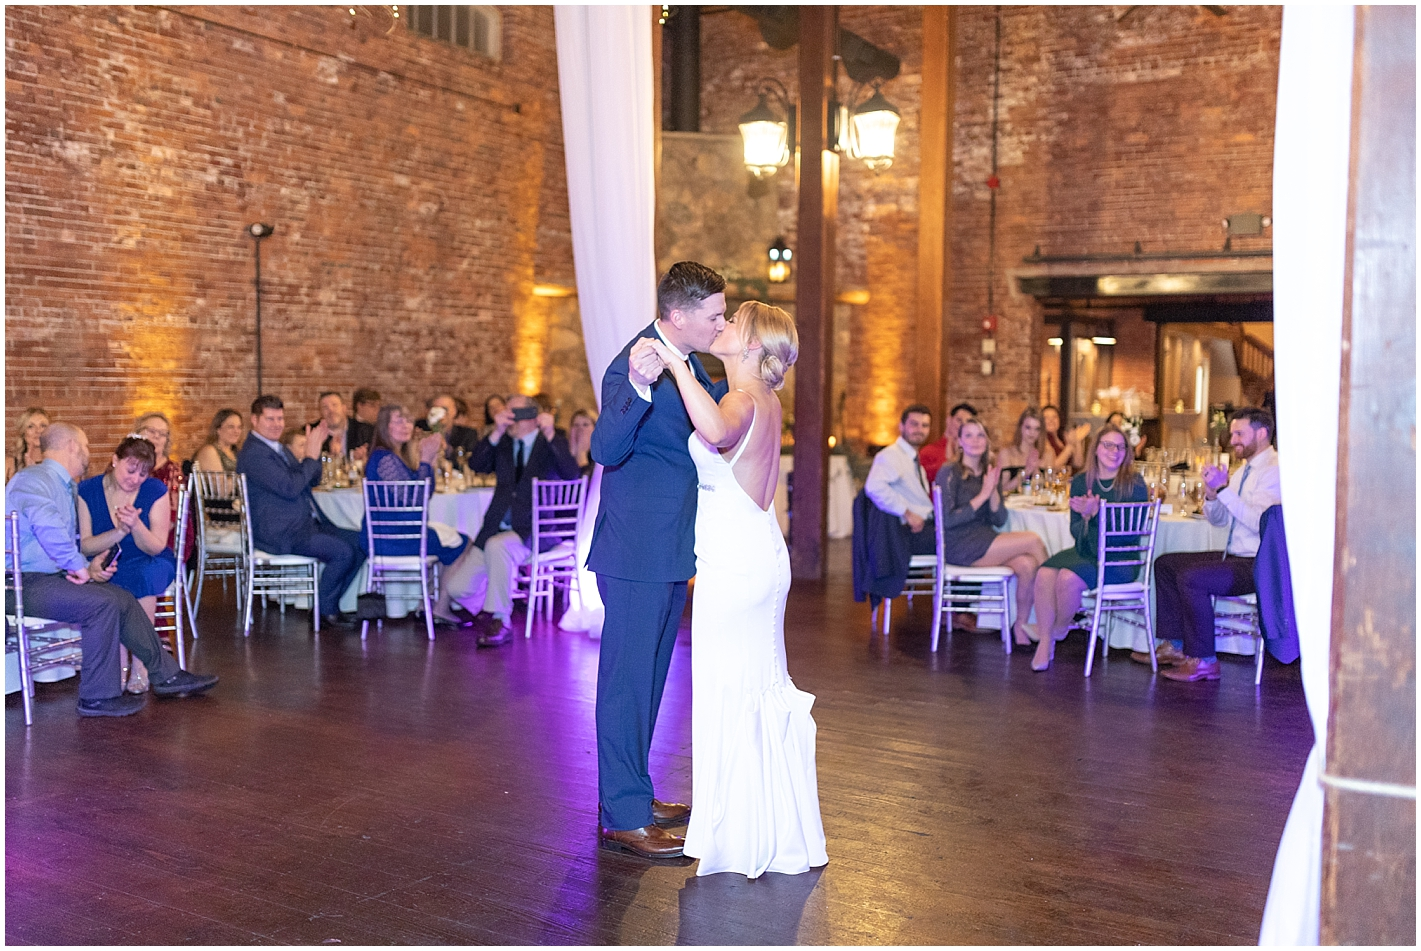 Bride and Groom First Dance Photo by Alyssa Parker Photography